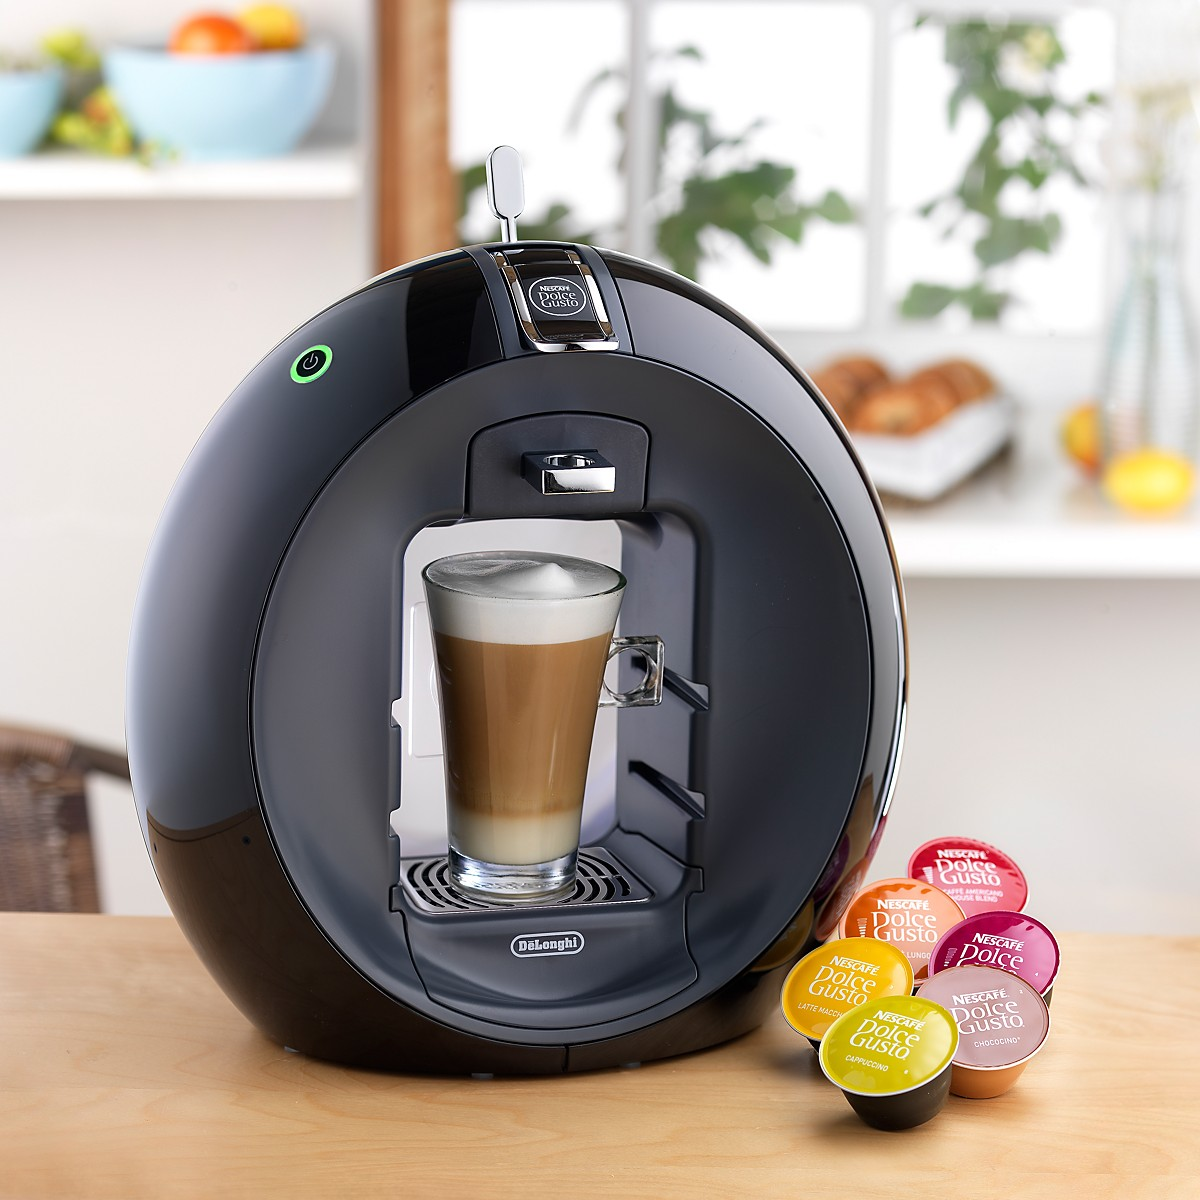 offre capsule dolce gusto dolce gusto caffe americano 1 x. Black Bedroom Furniture Sets. Home Design Ideas